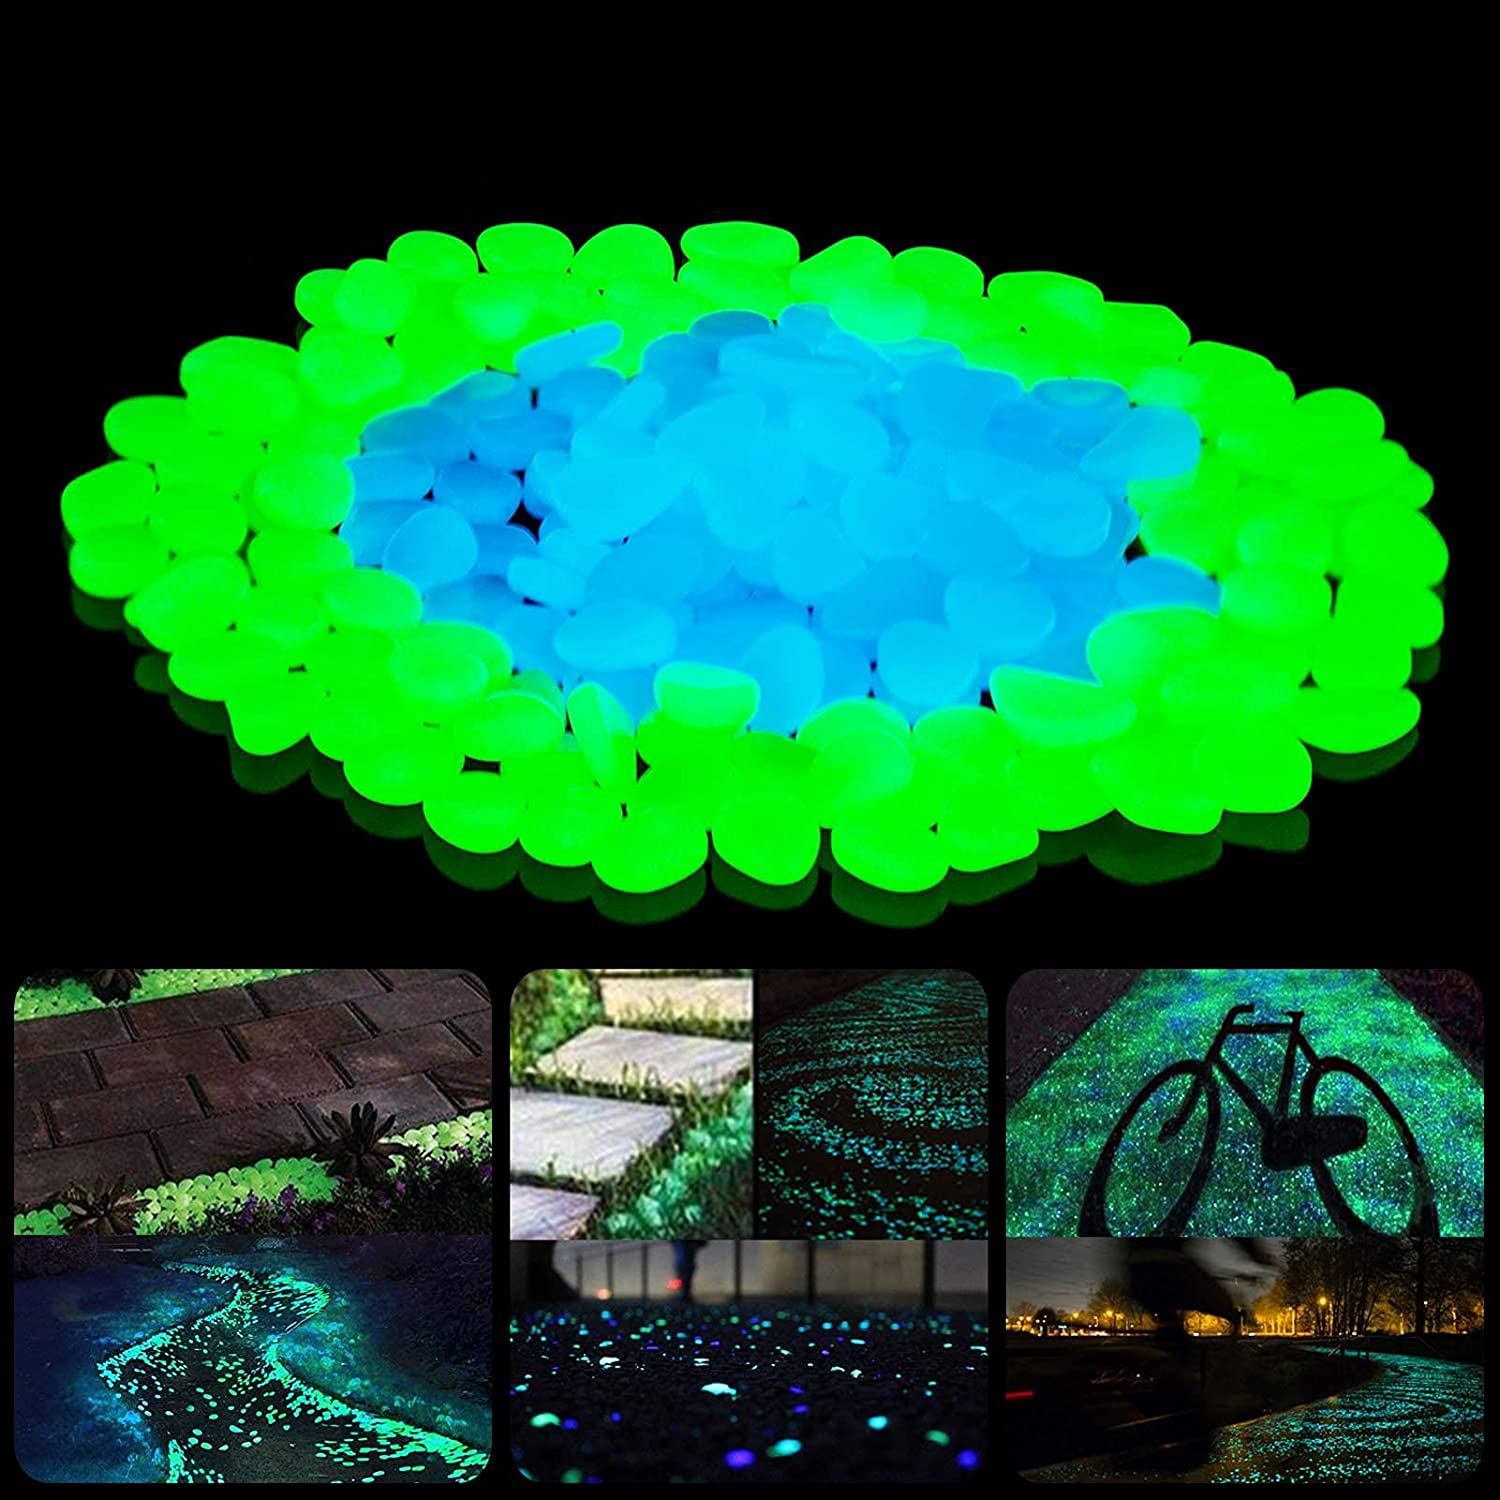 Glowing Rocks, Glow in the Dark Pebbles Stones for Outdoor Decorative , Garden Lawn Yard, Aquarium, Walkway, Fish Tank,Pathway,Driveway, Luminous Pebbles Powered by Light or Solar-Recharge Repeatedly